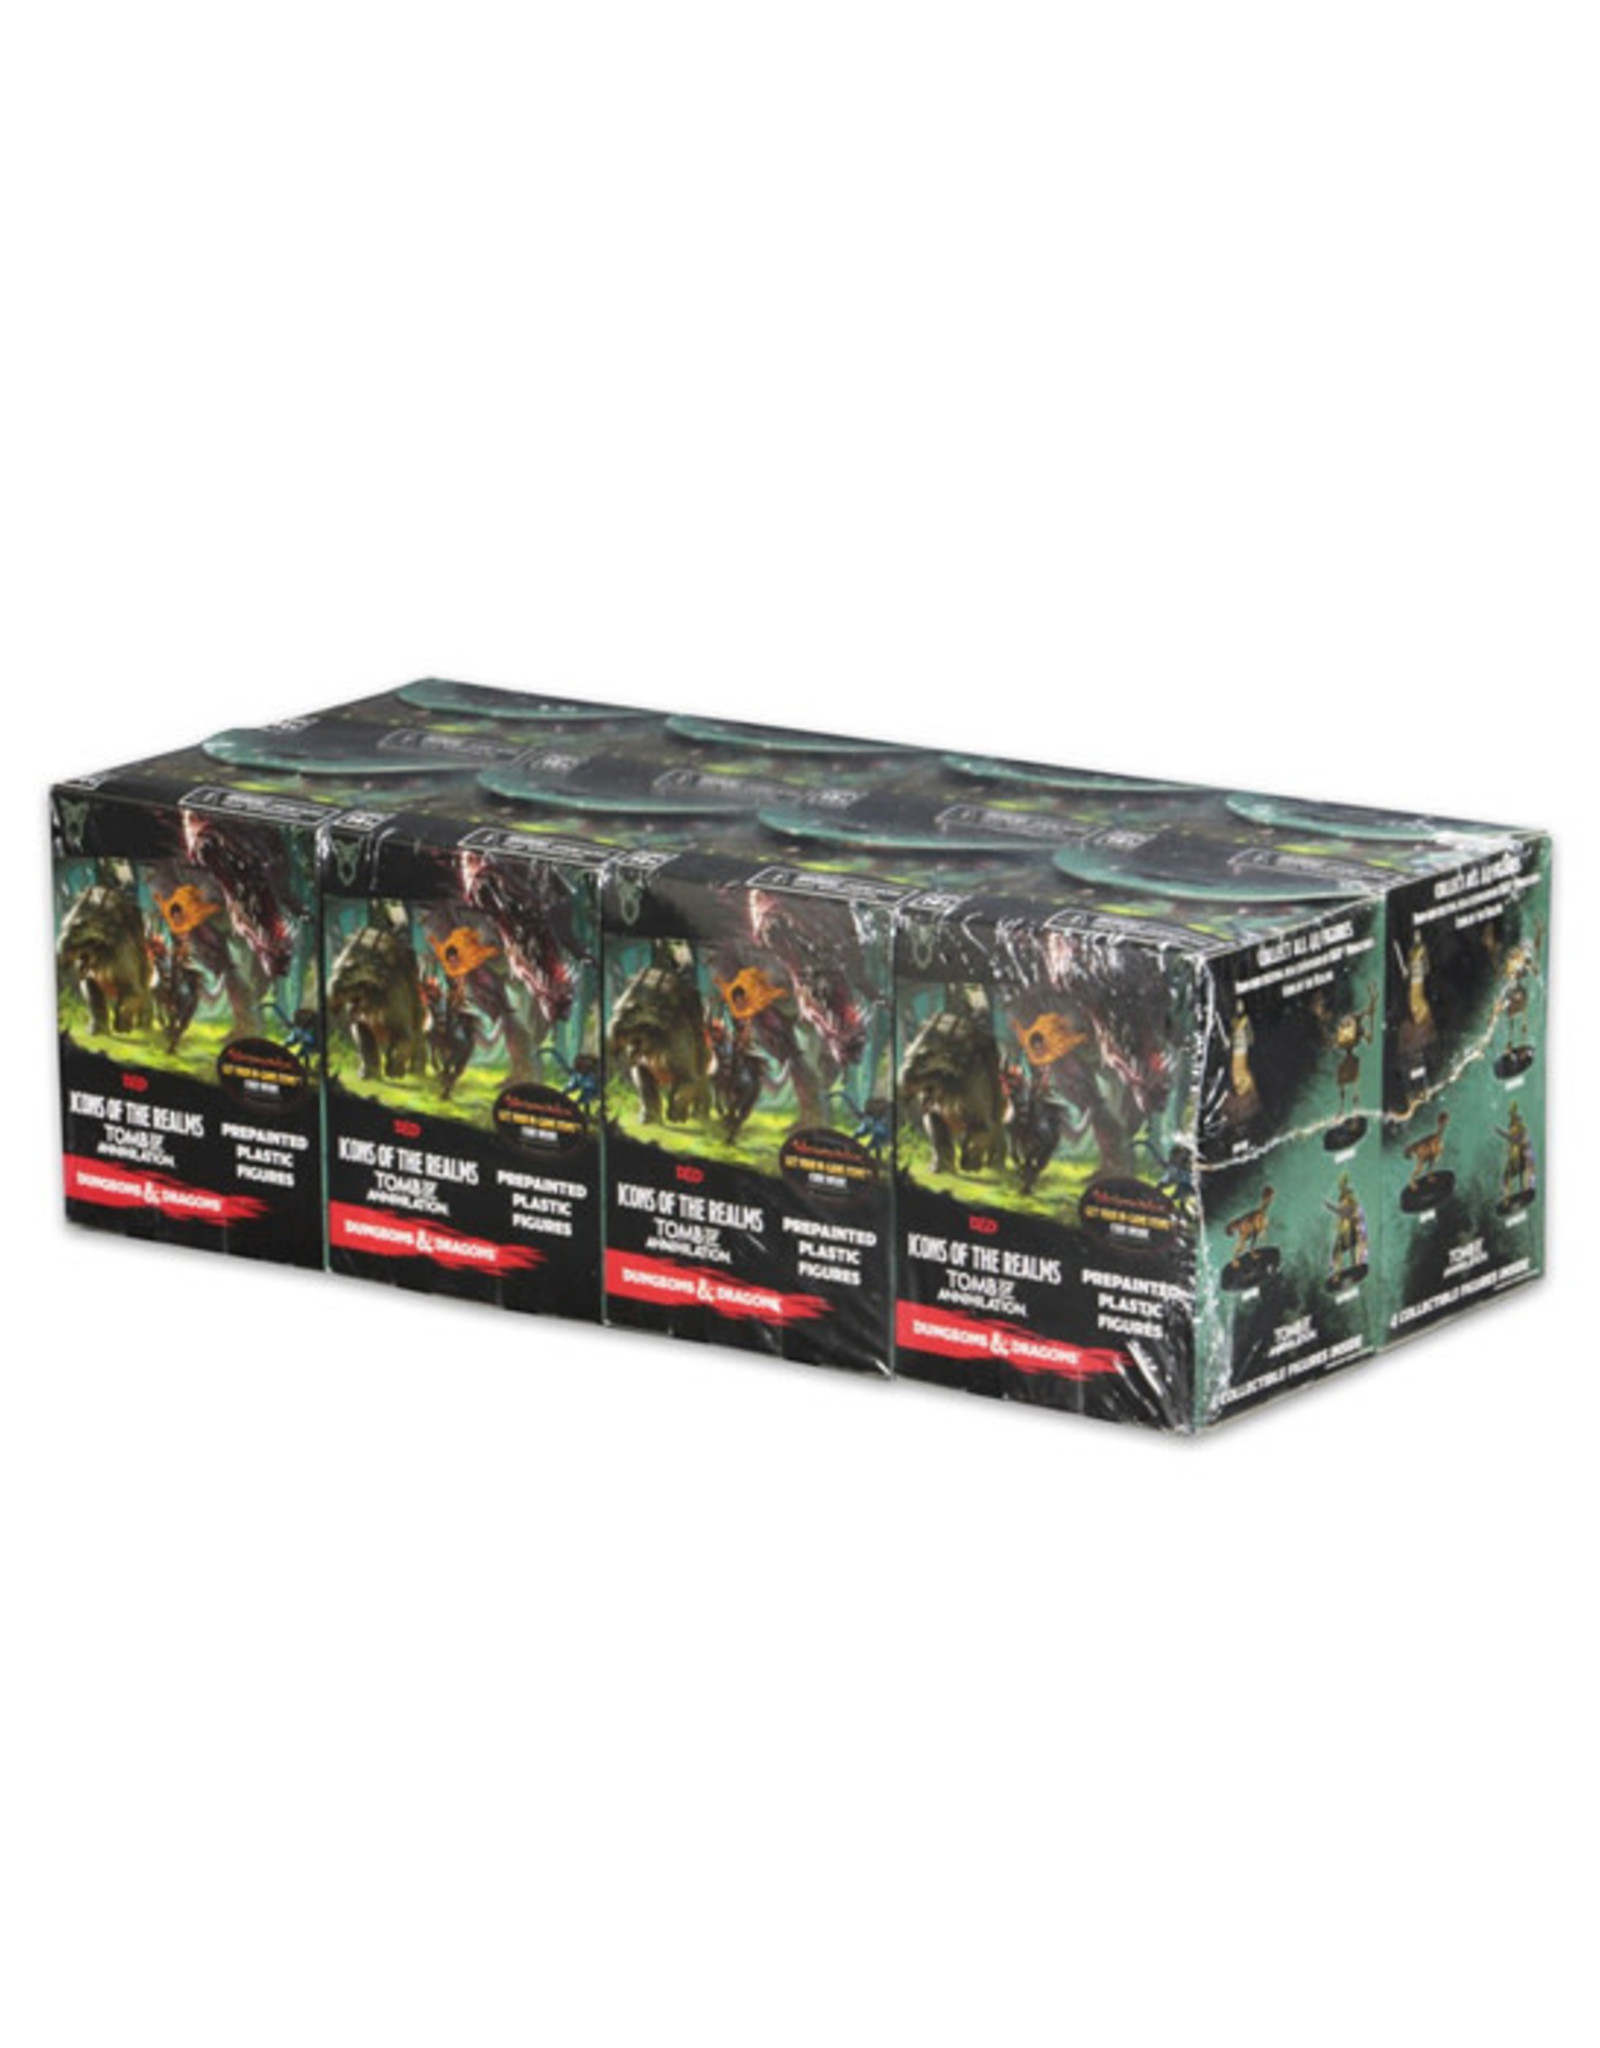 Dungeons & Dragons Dungeons & Dragons: Icons of the Realms - Tomb of Annihilation - Booster Brick